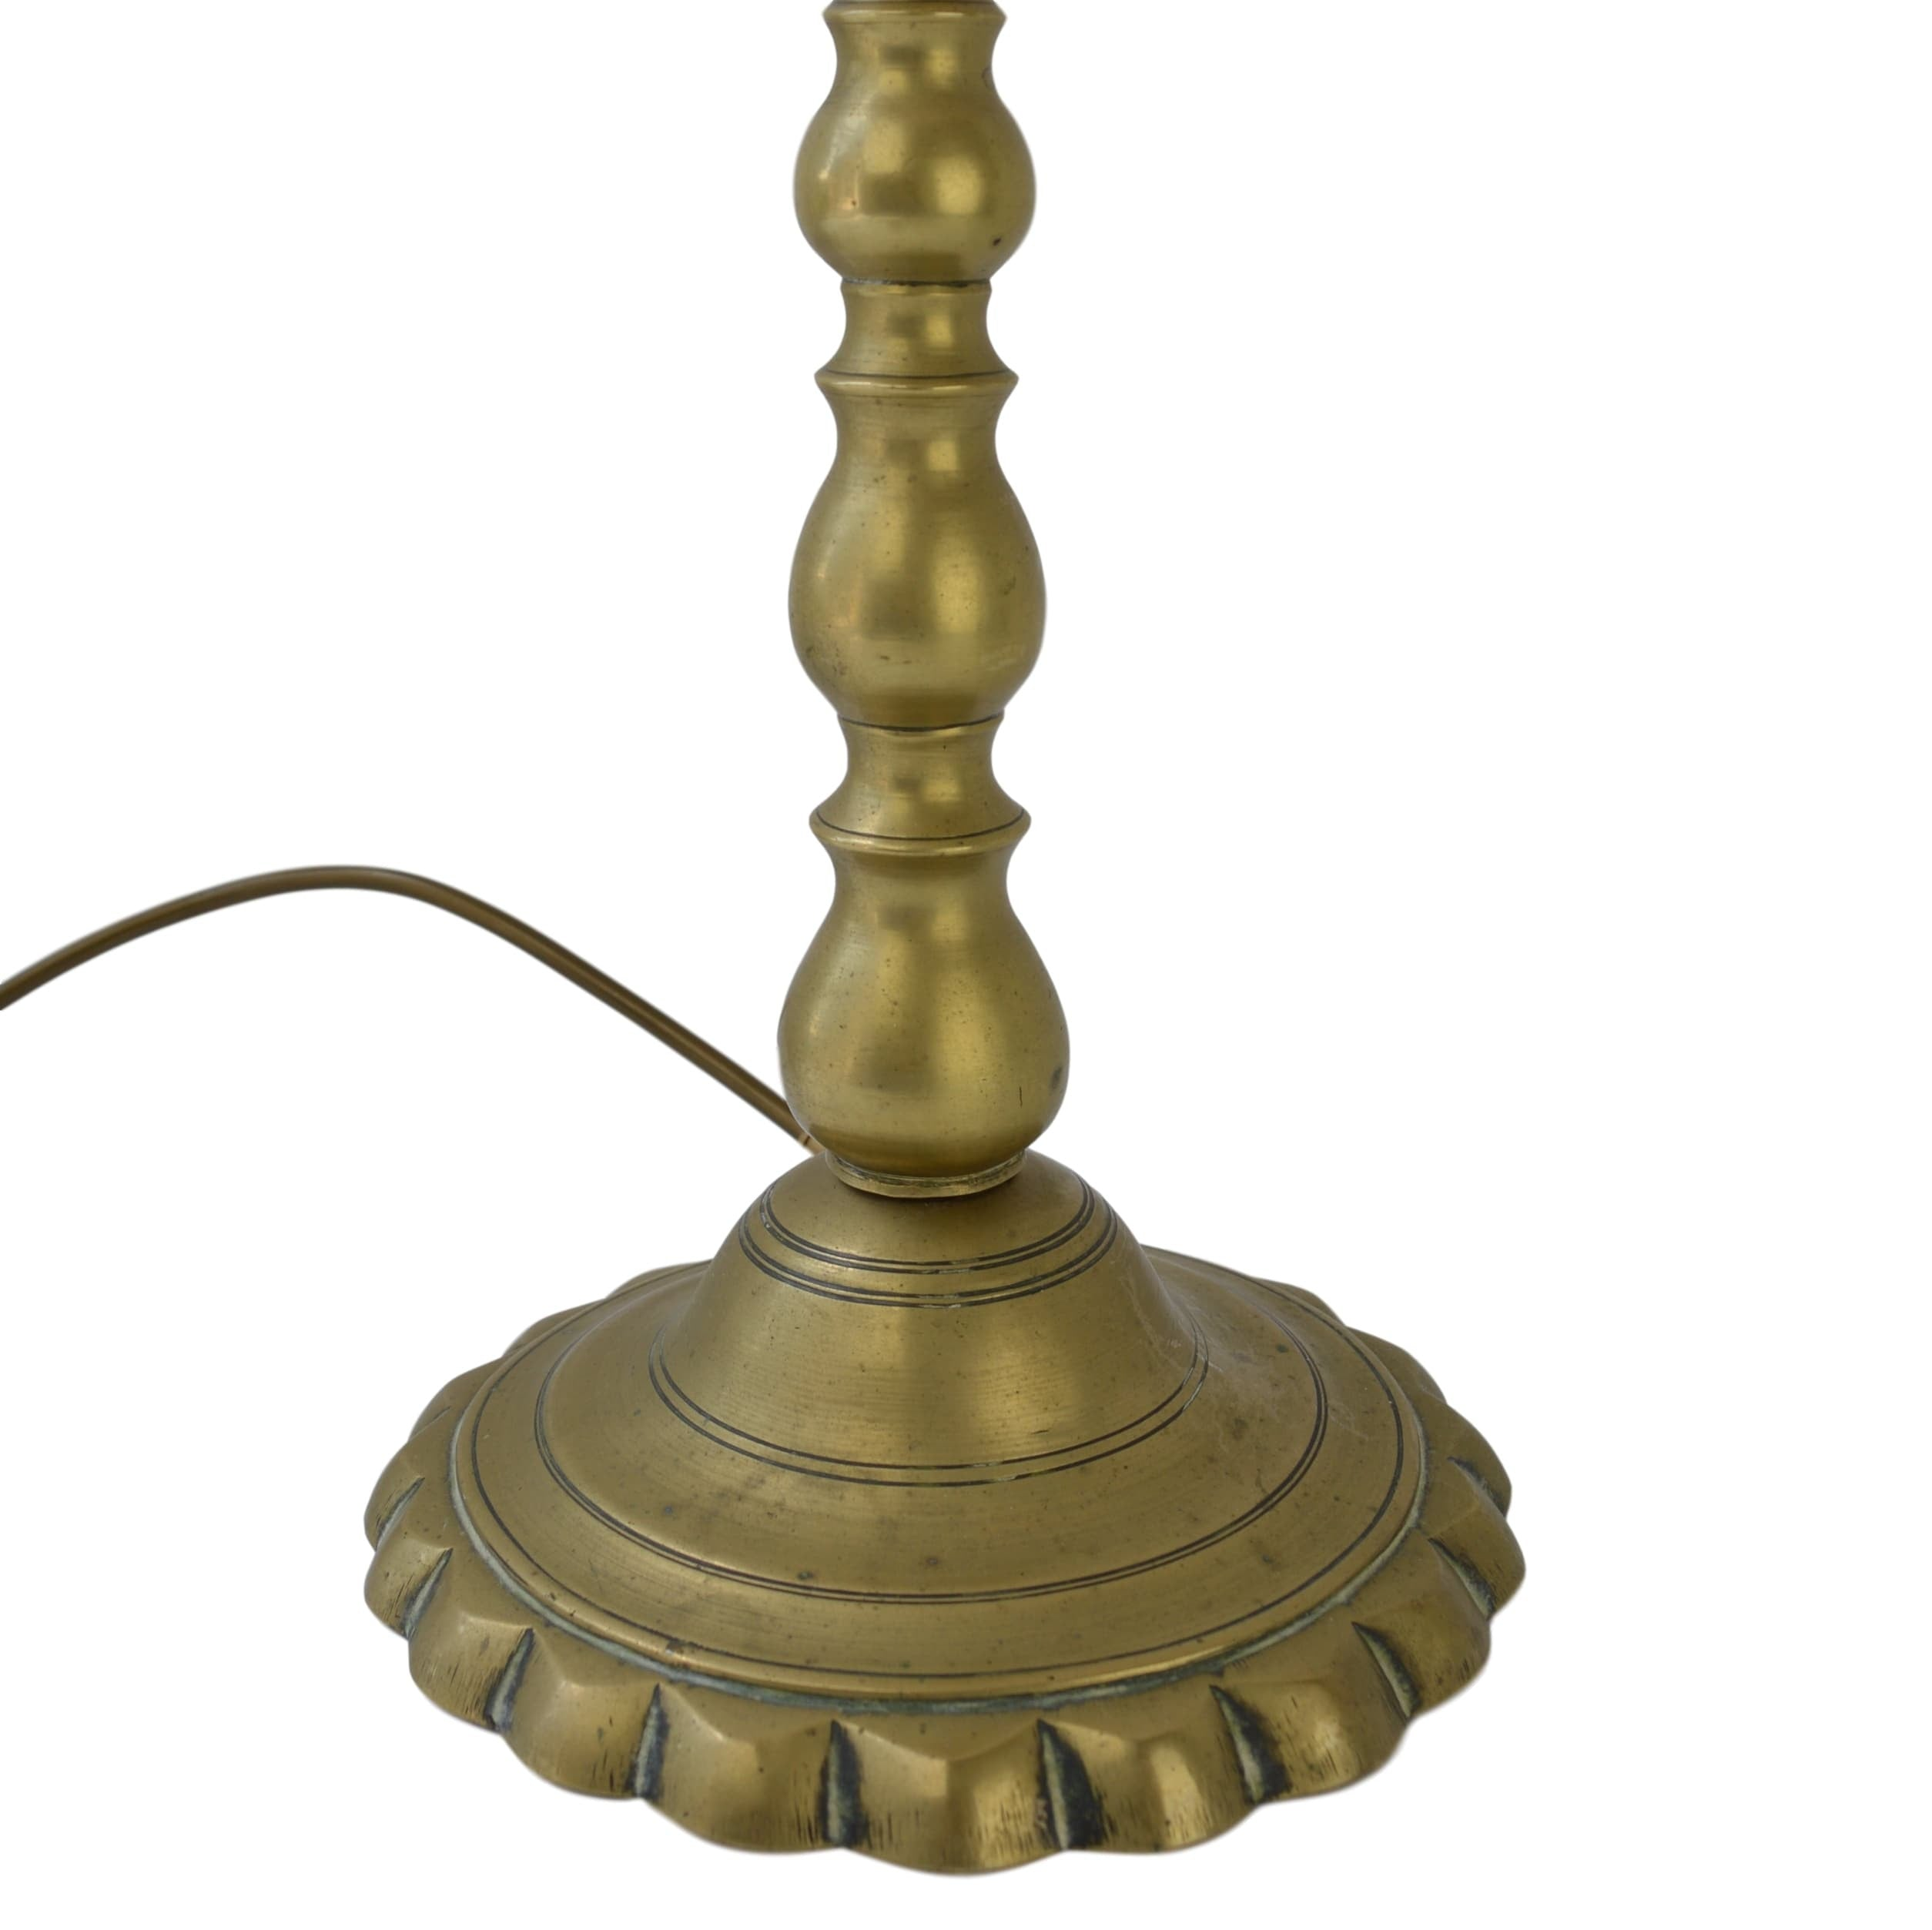 Munro and Kerr brass table lamp